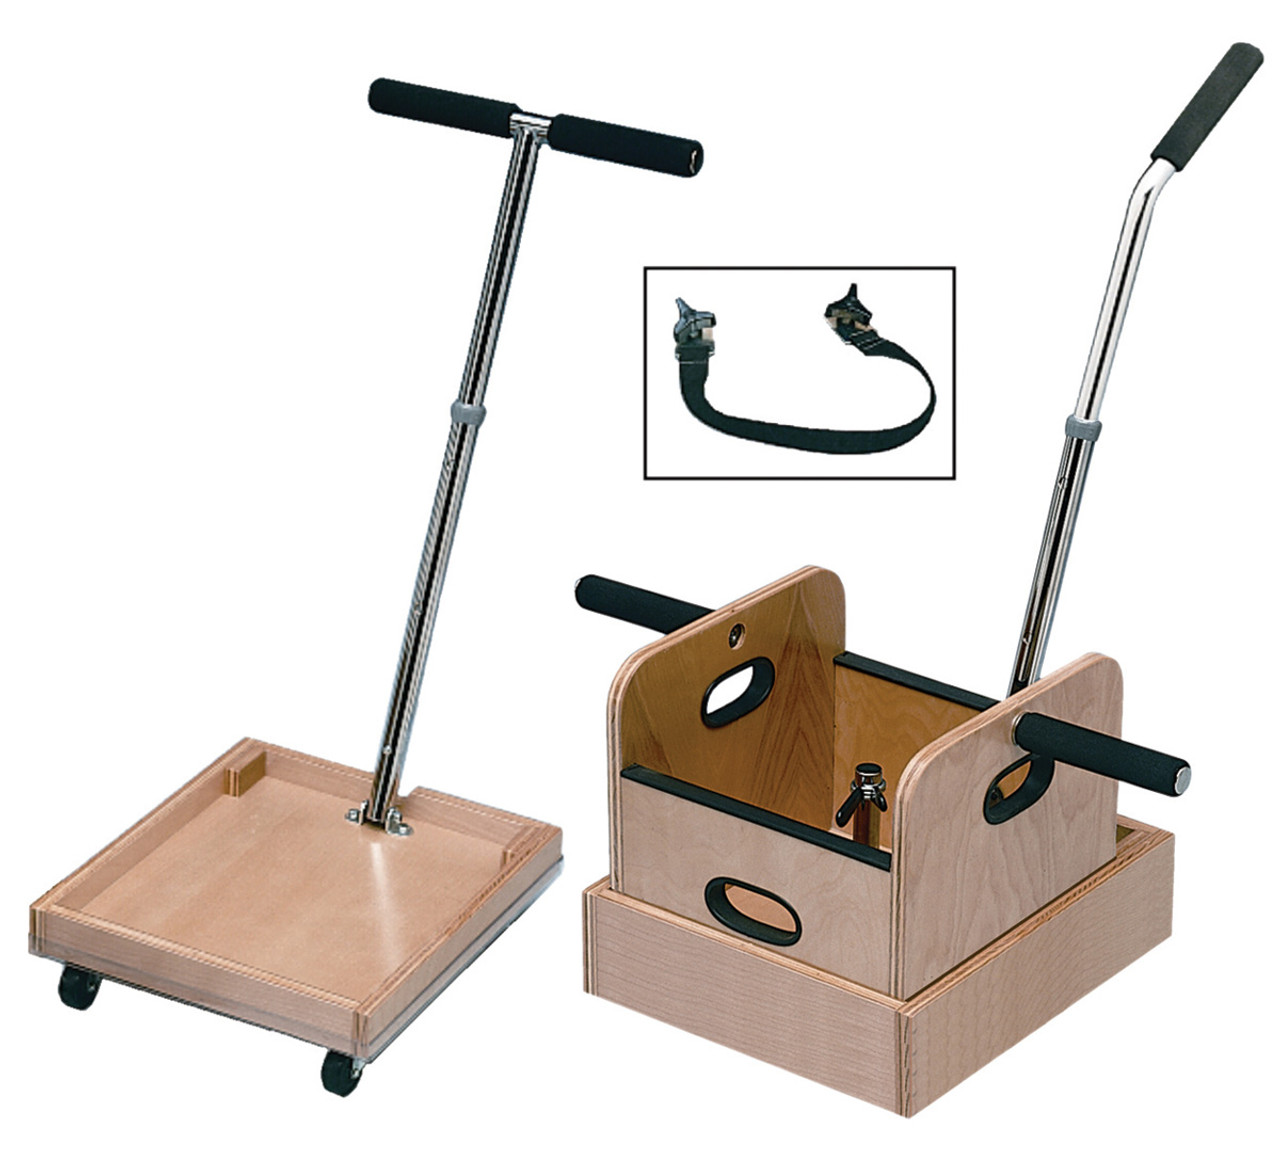 FCE Work Device - Mobile Weighted cart with T-handle, accessory box, and sled with straight handle